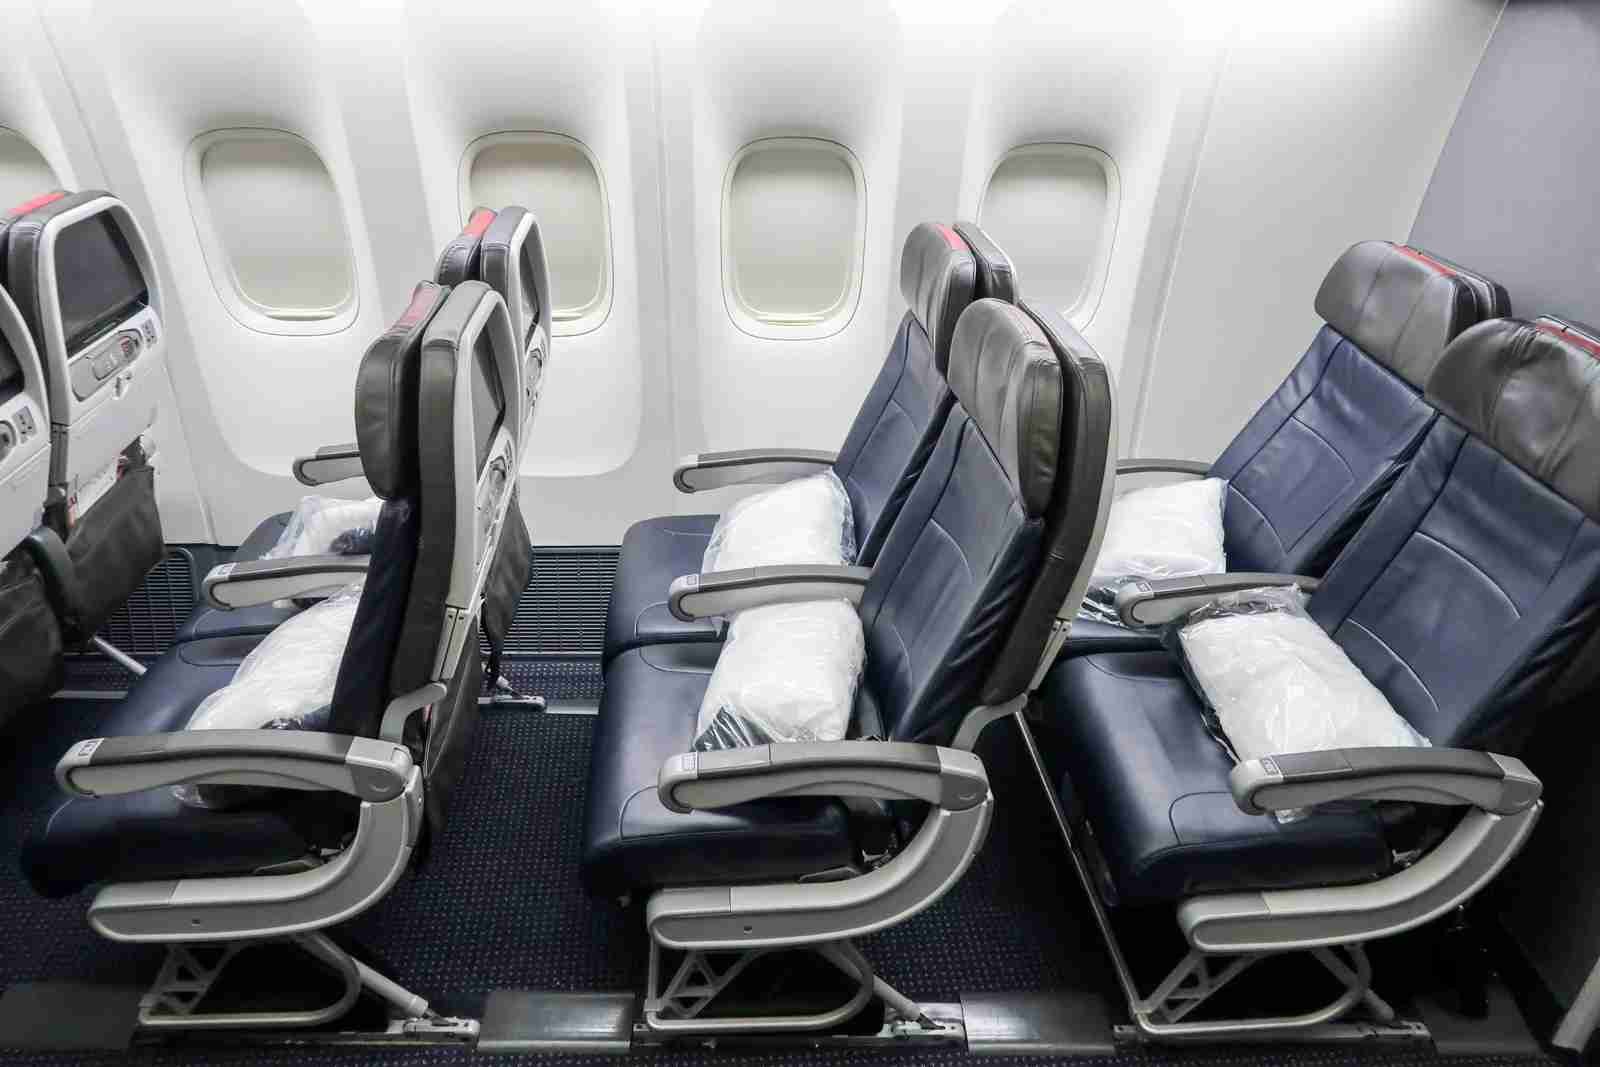 Preferred seats on American Airlines